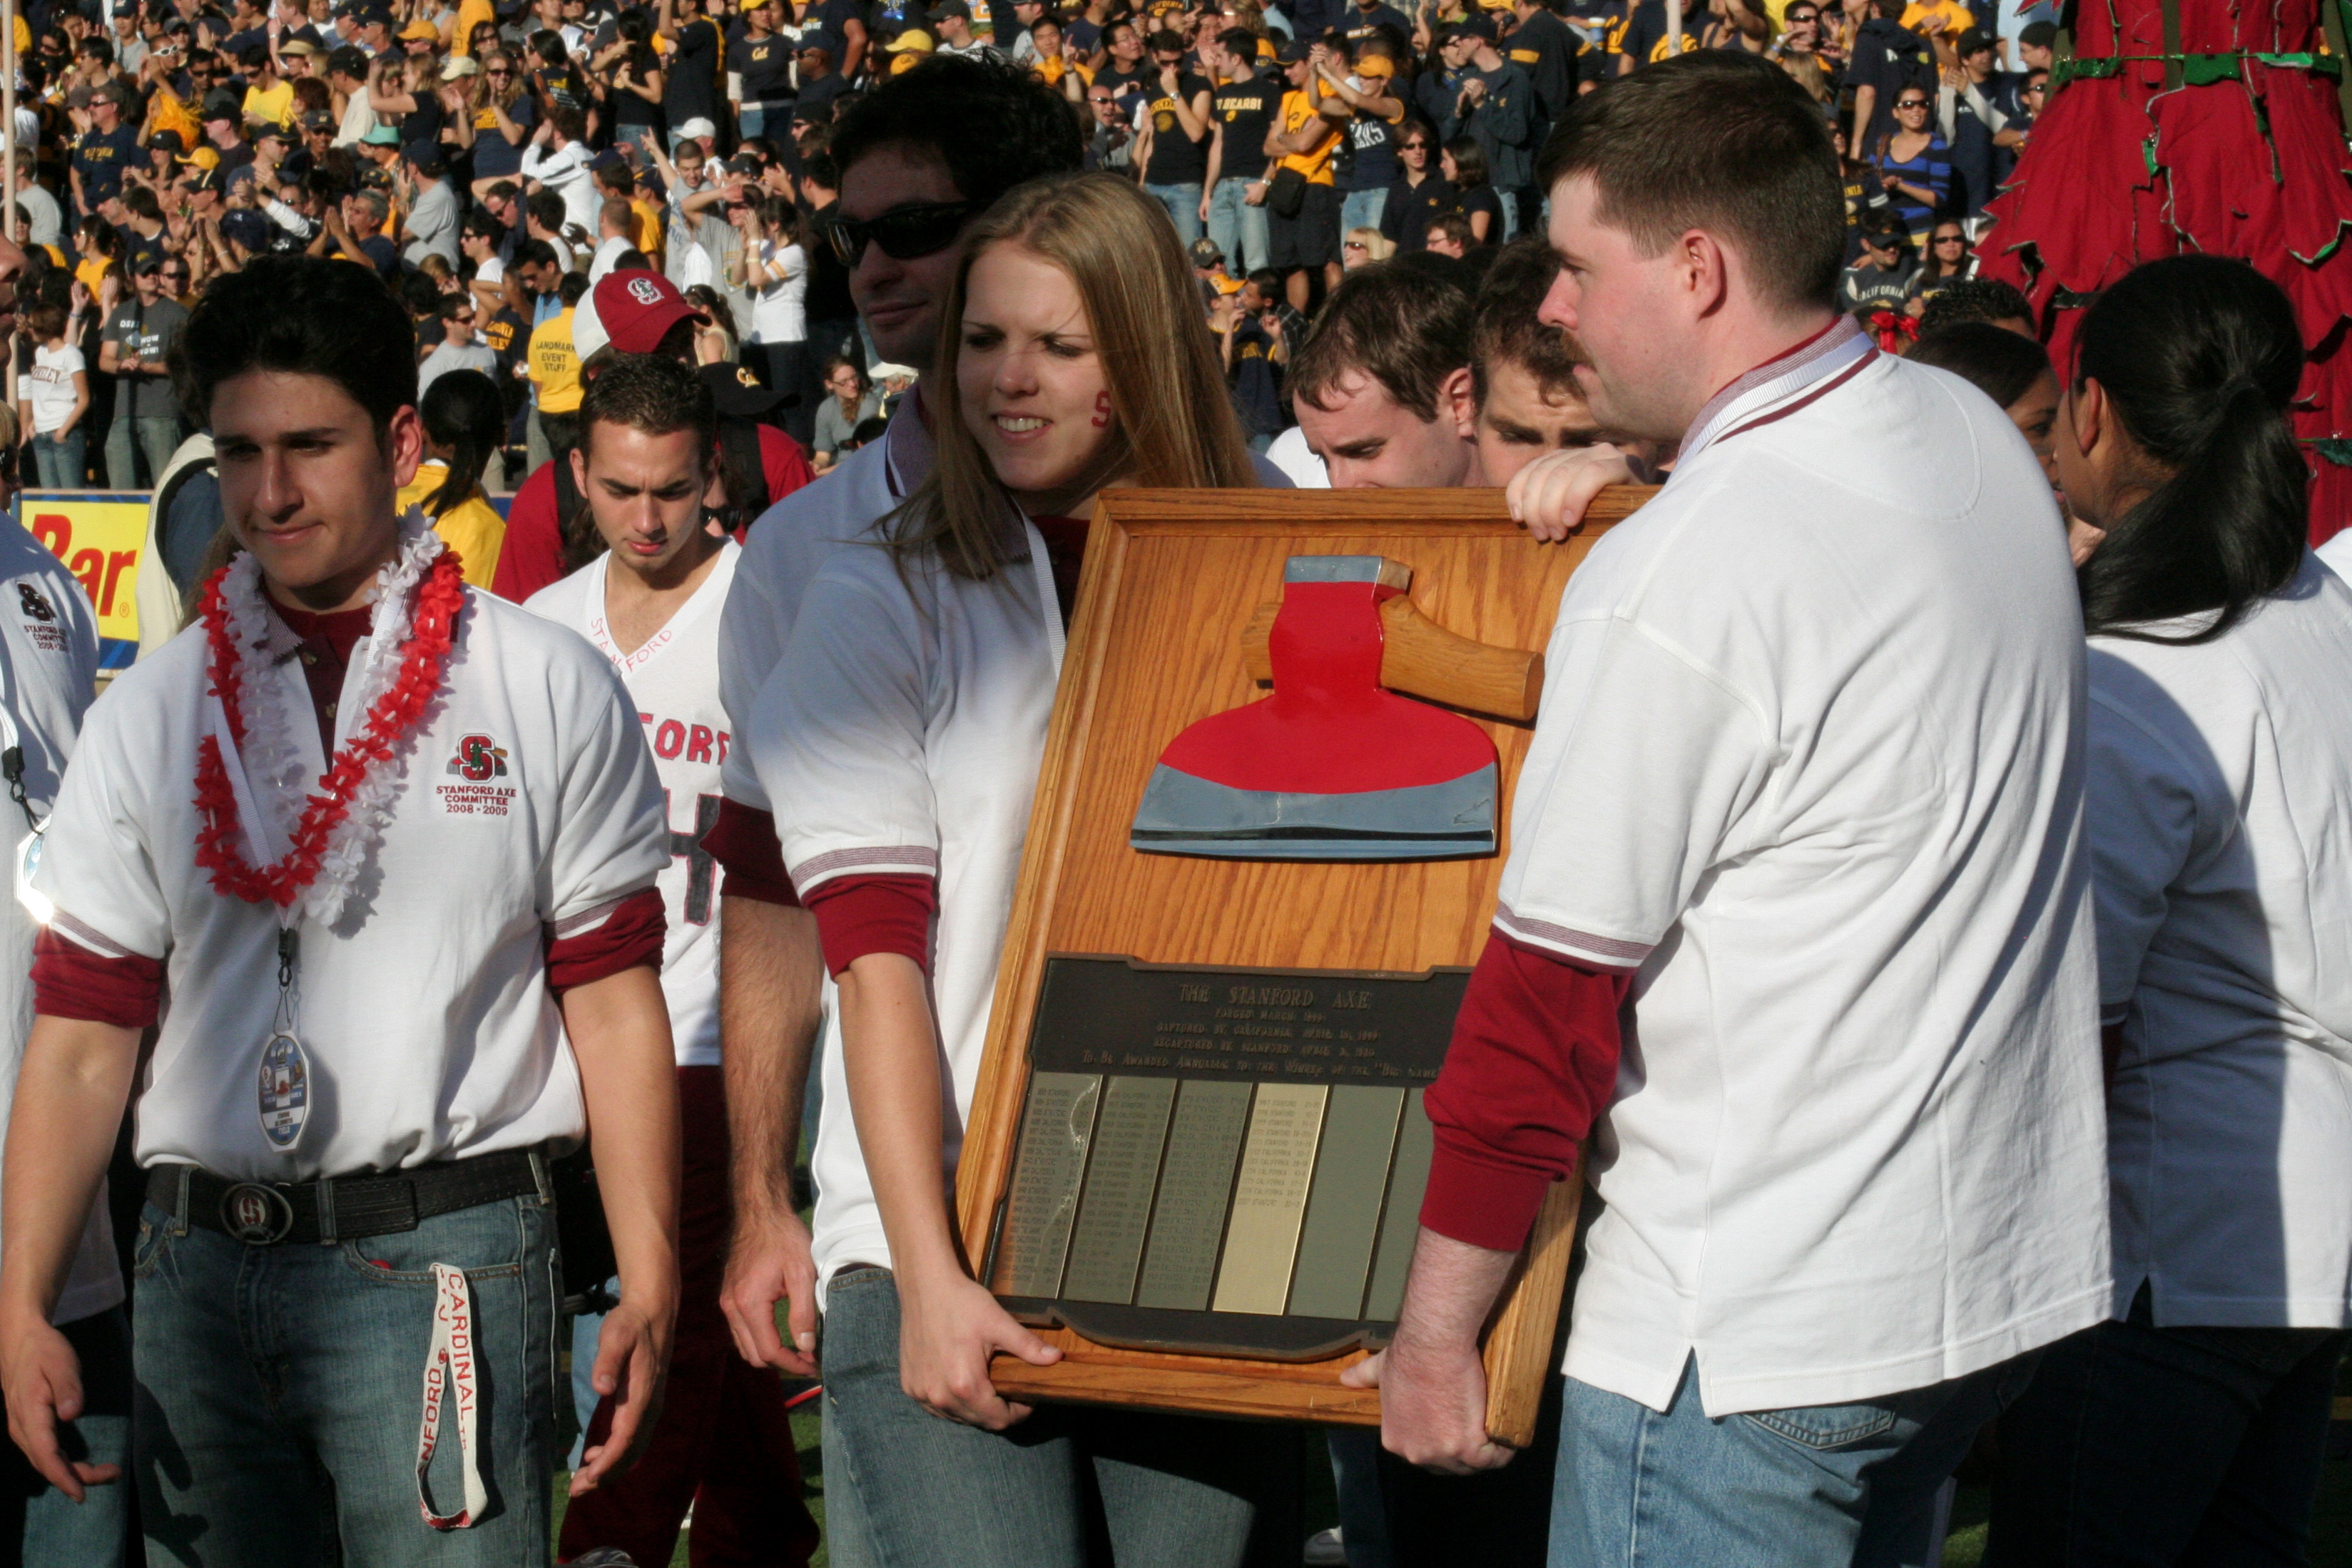 Stanford University's Axe Committee carries the Axe around Memorial Stadium.